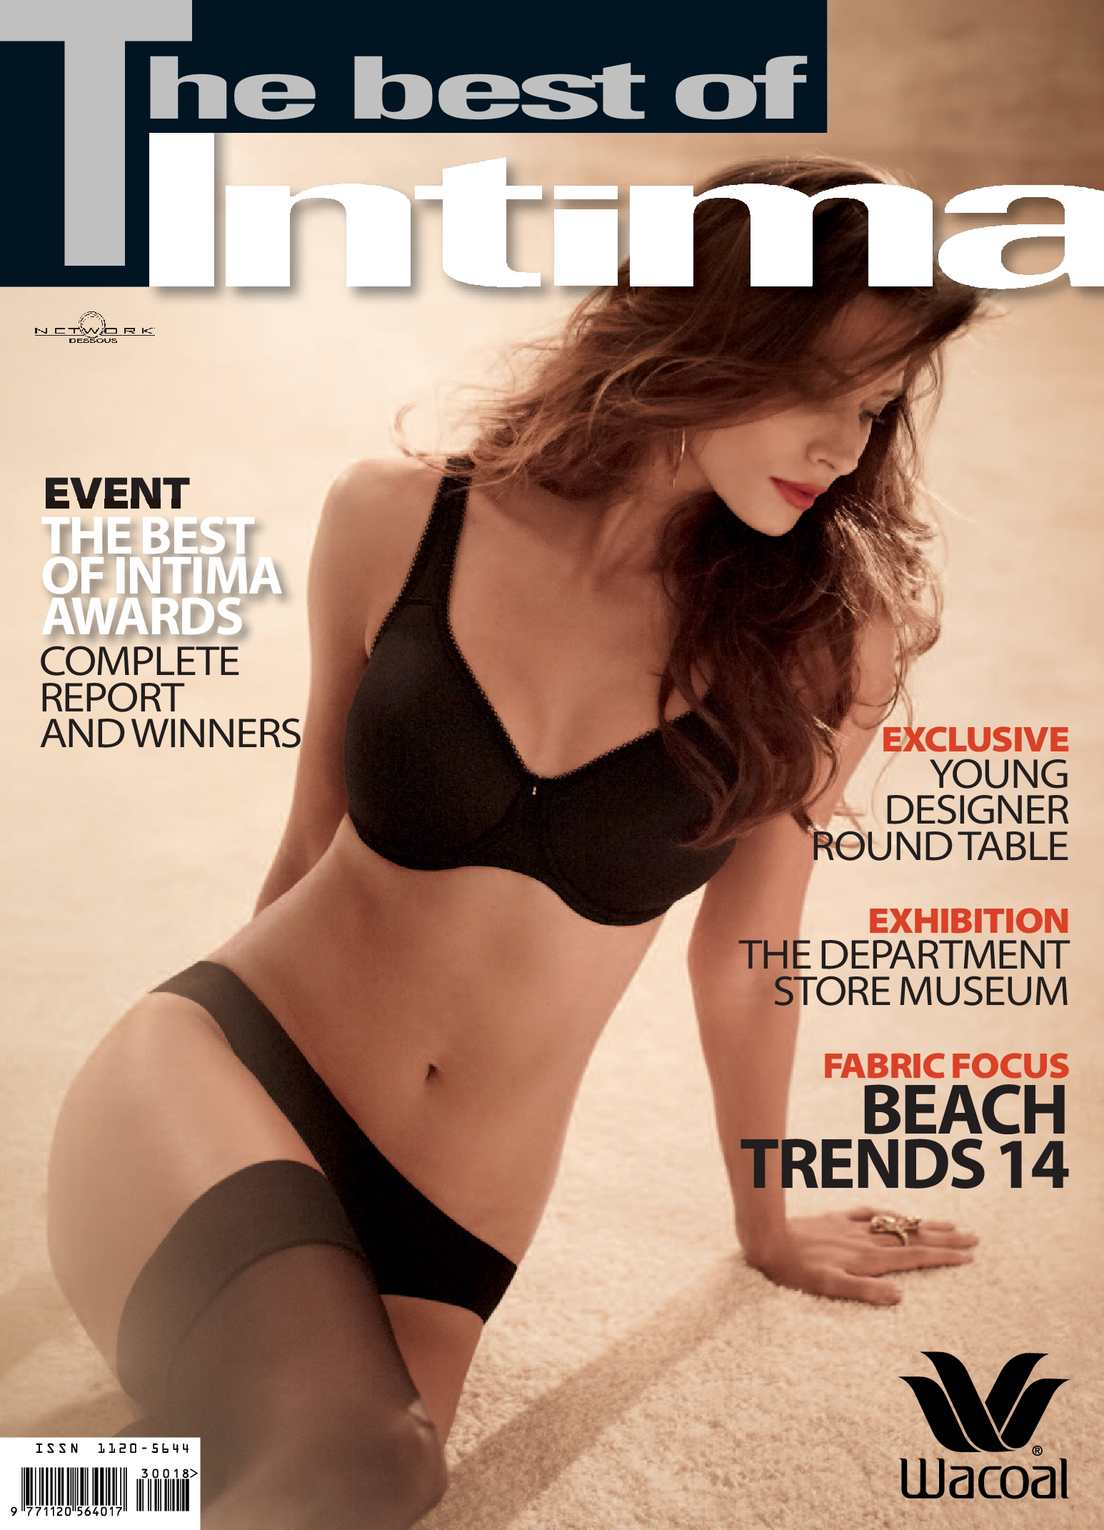 147be5e840 Calaméo - THE BEST OF INTIMA - February 2013